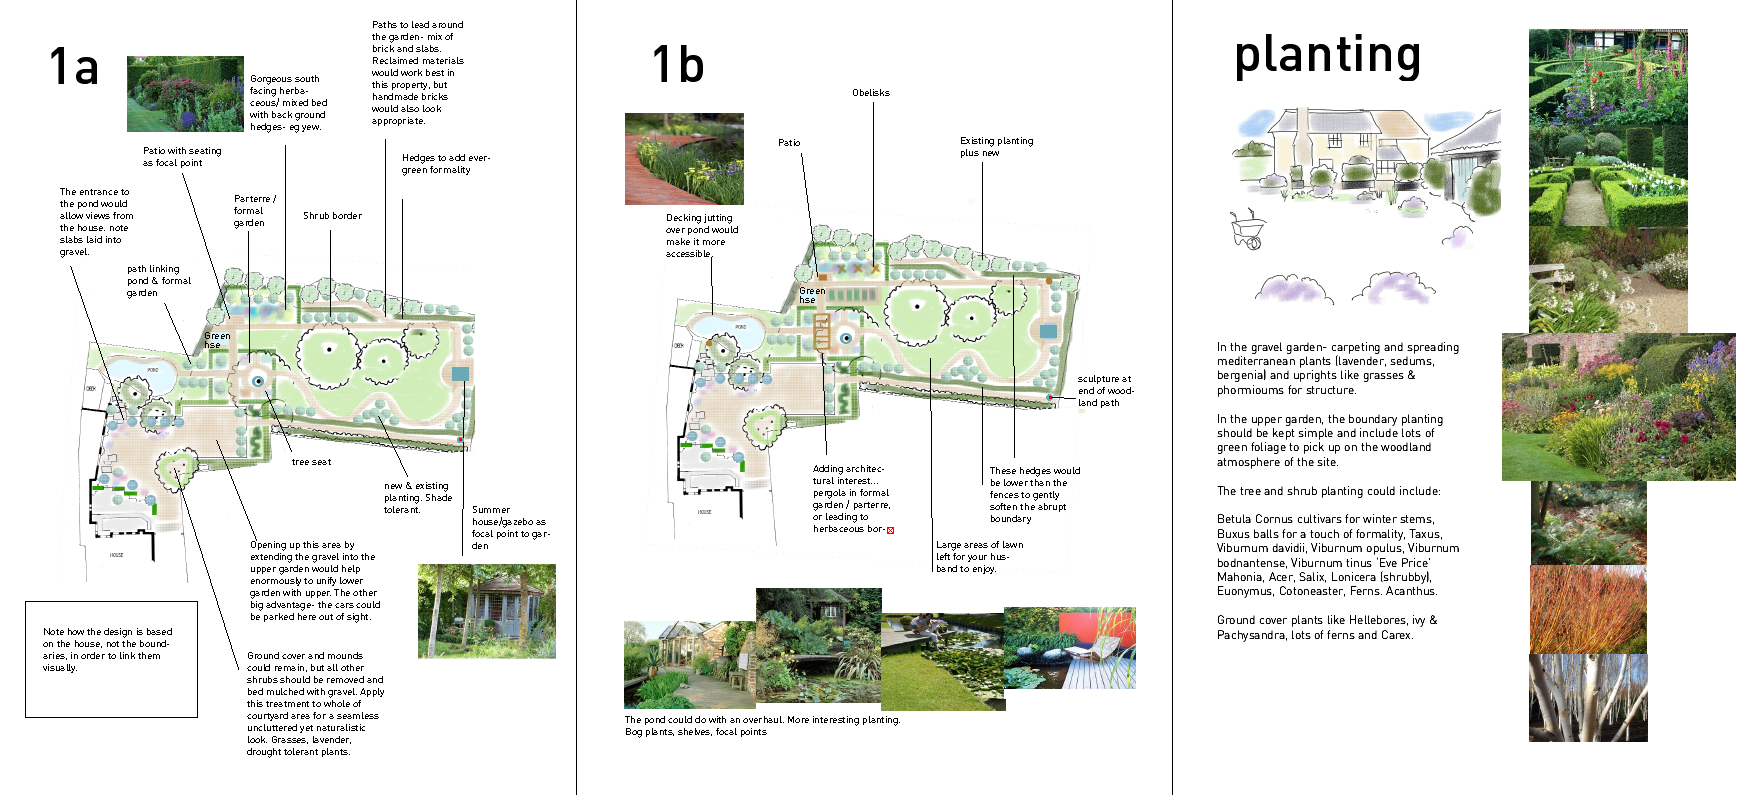 helen riches garden design and writing portfolio ForGarden Design Portfolio